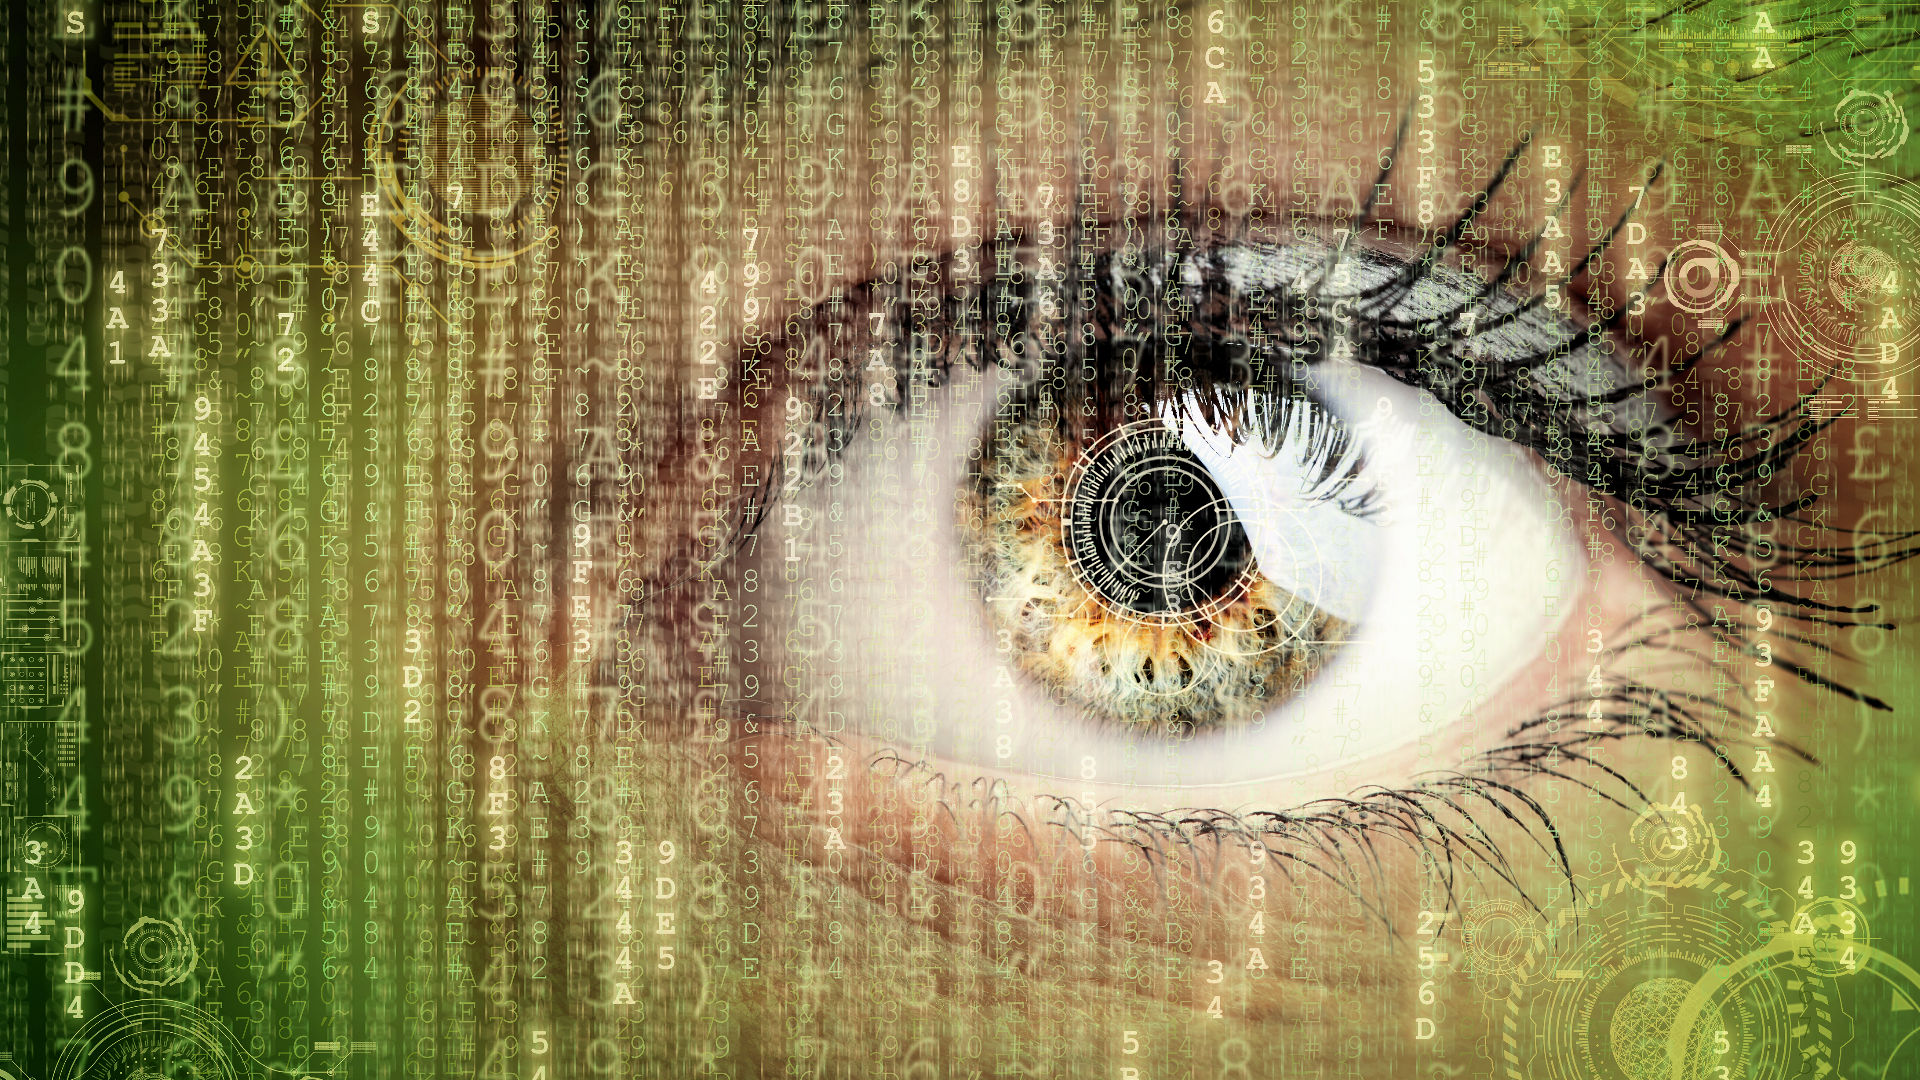 Changing perceptions of cybersecurity in the workplace